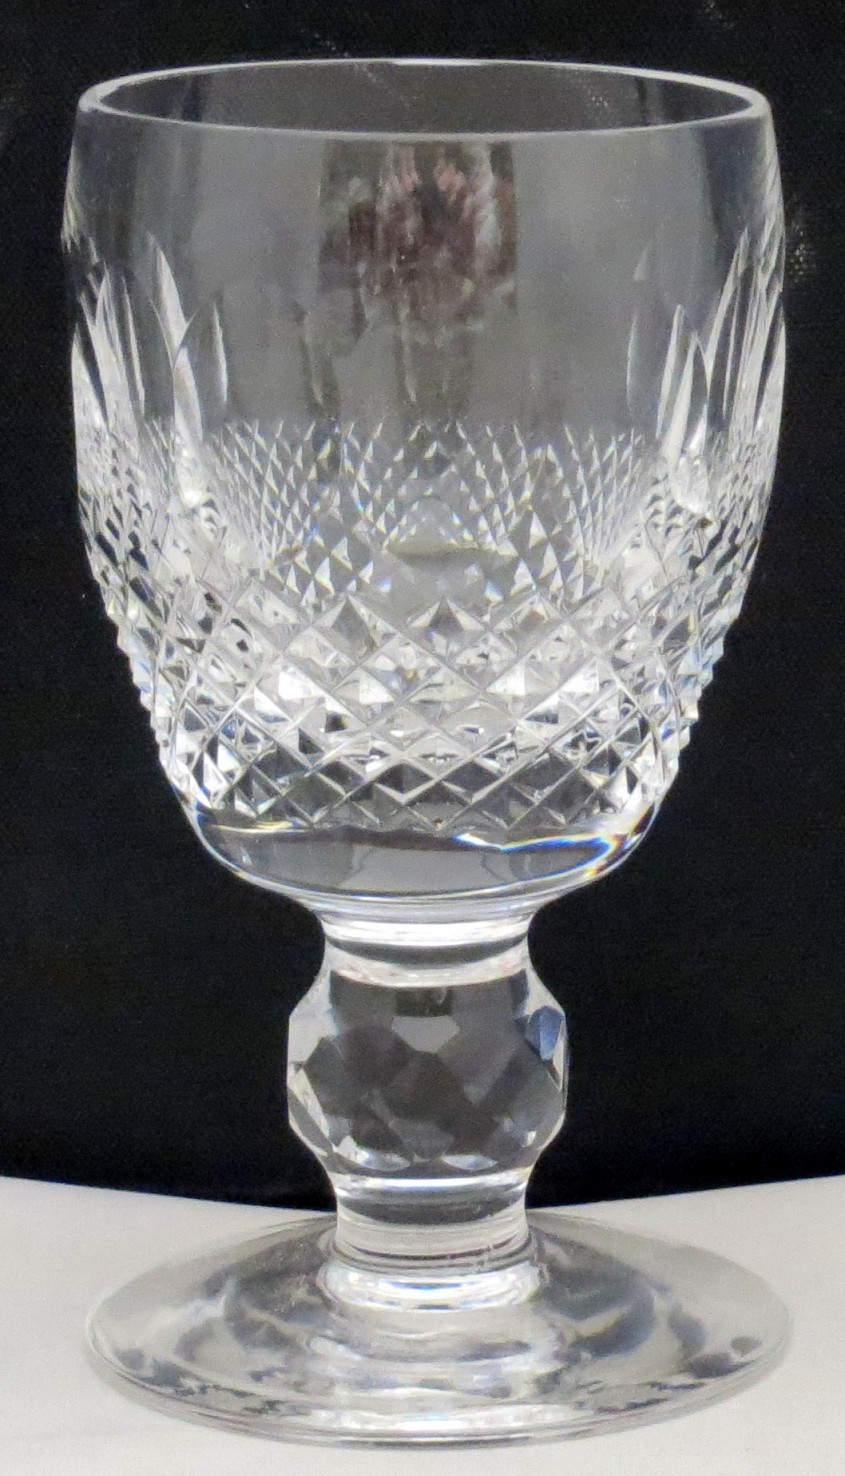 Extraordinary Waterford Crystal Patterns For Dining Sets Ideas With Waterford Crystal Glass Patterns